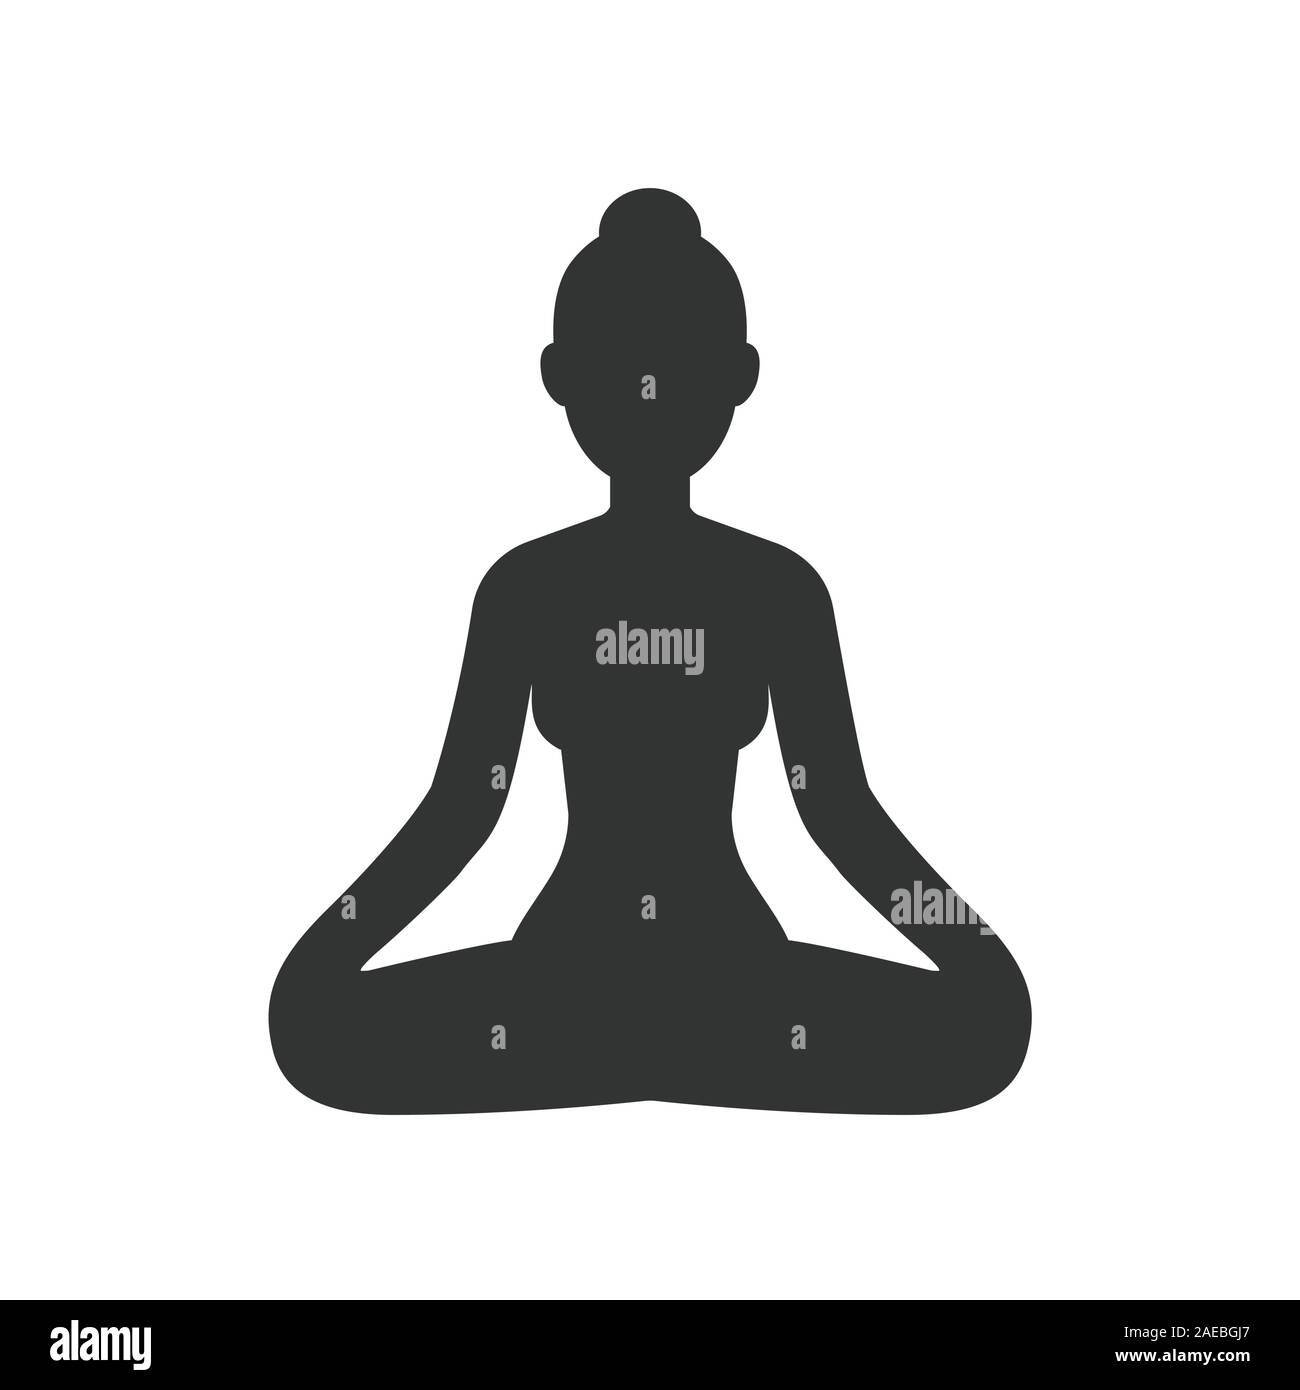 Woman Meditating Sitting In Lotus Pose Stylized Female Body Silhouette Simple Vector Icon Isolated On White Yoga And Meditation Clip Art Illustrati Stock Vector Image Art Alamy